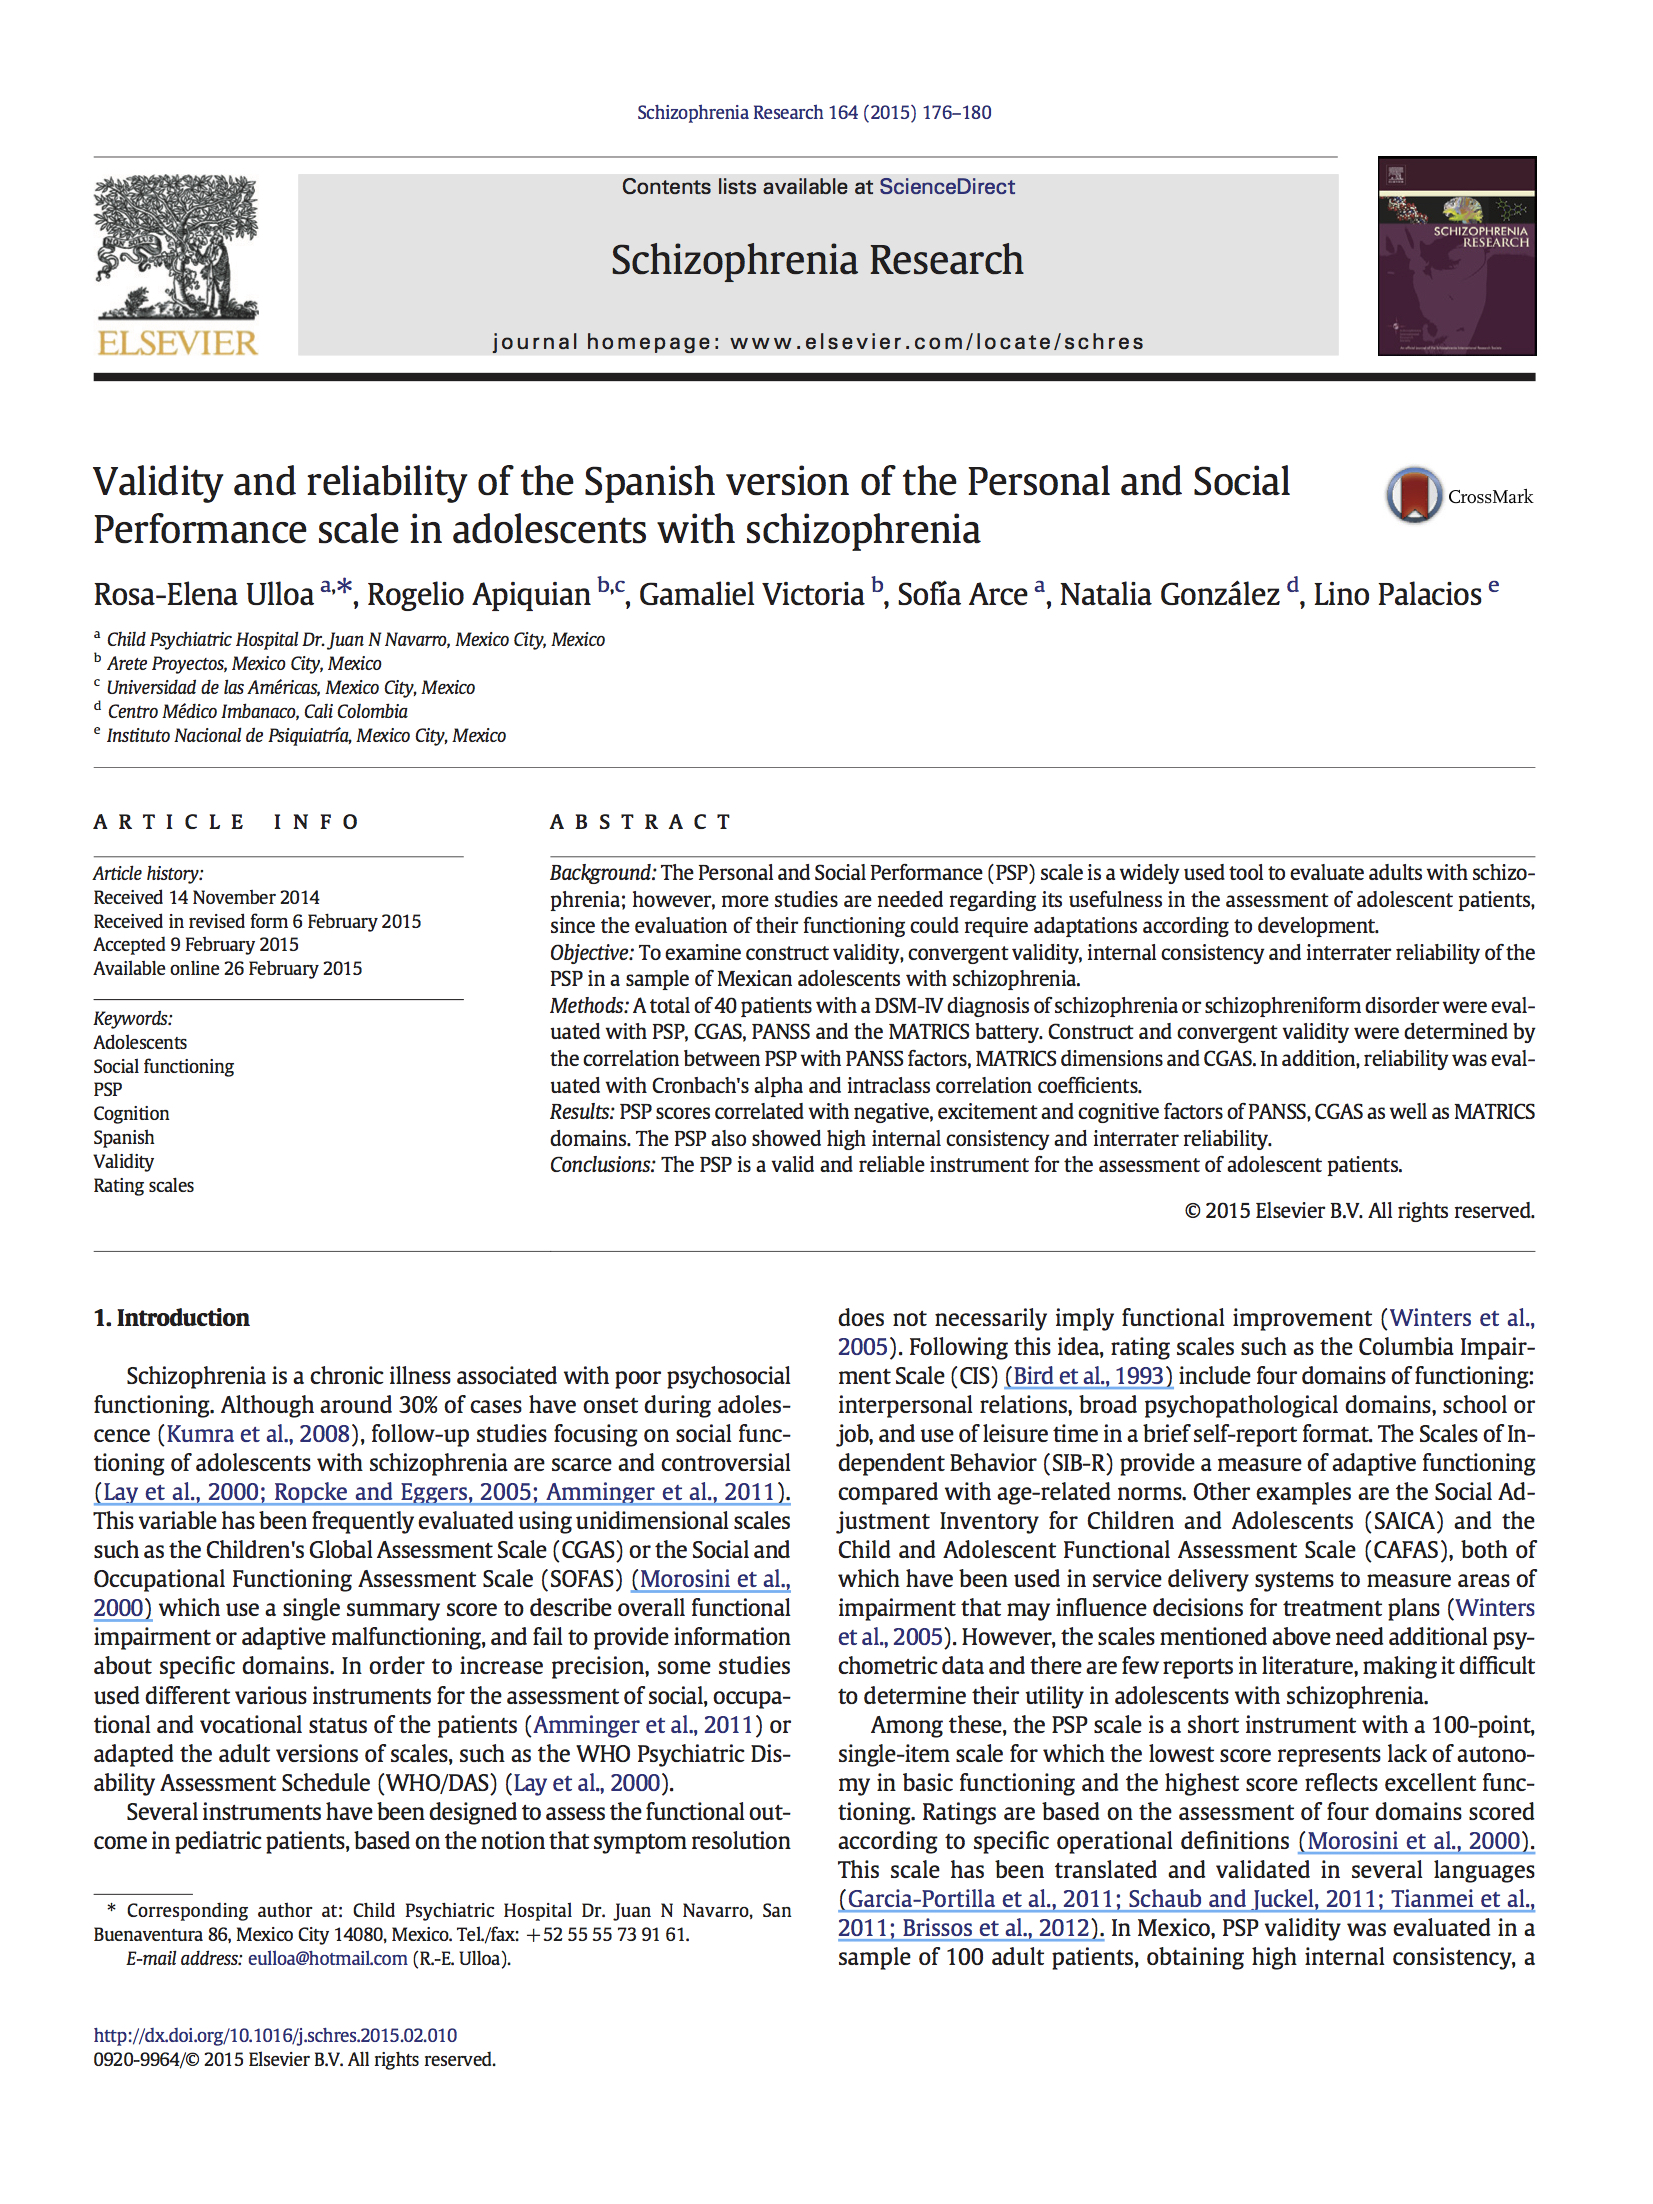 Validity and reliability of the Spanish version of the Personal and SocialPerformance scale in adolescents with schizophrenia.jpg